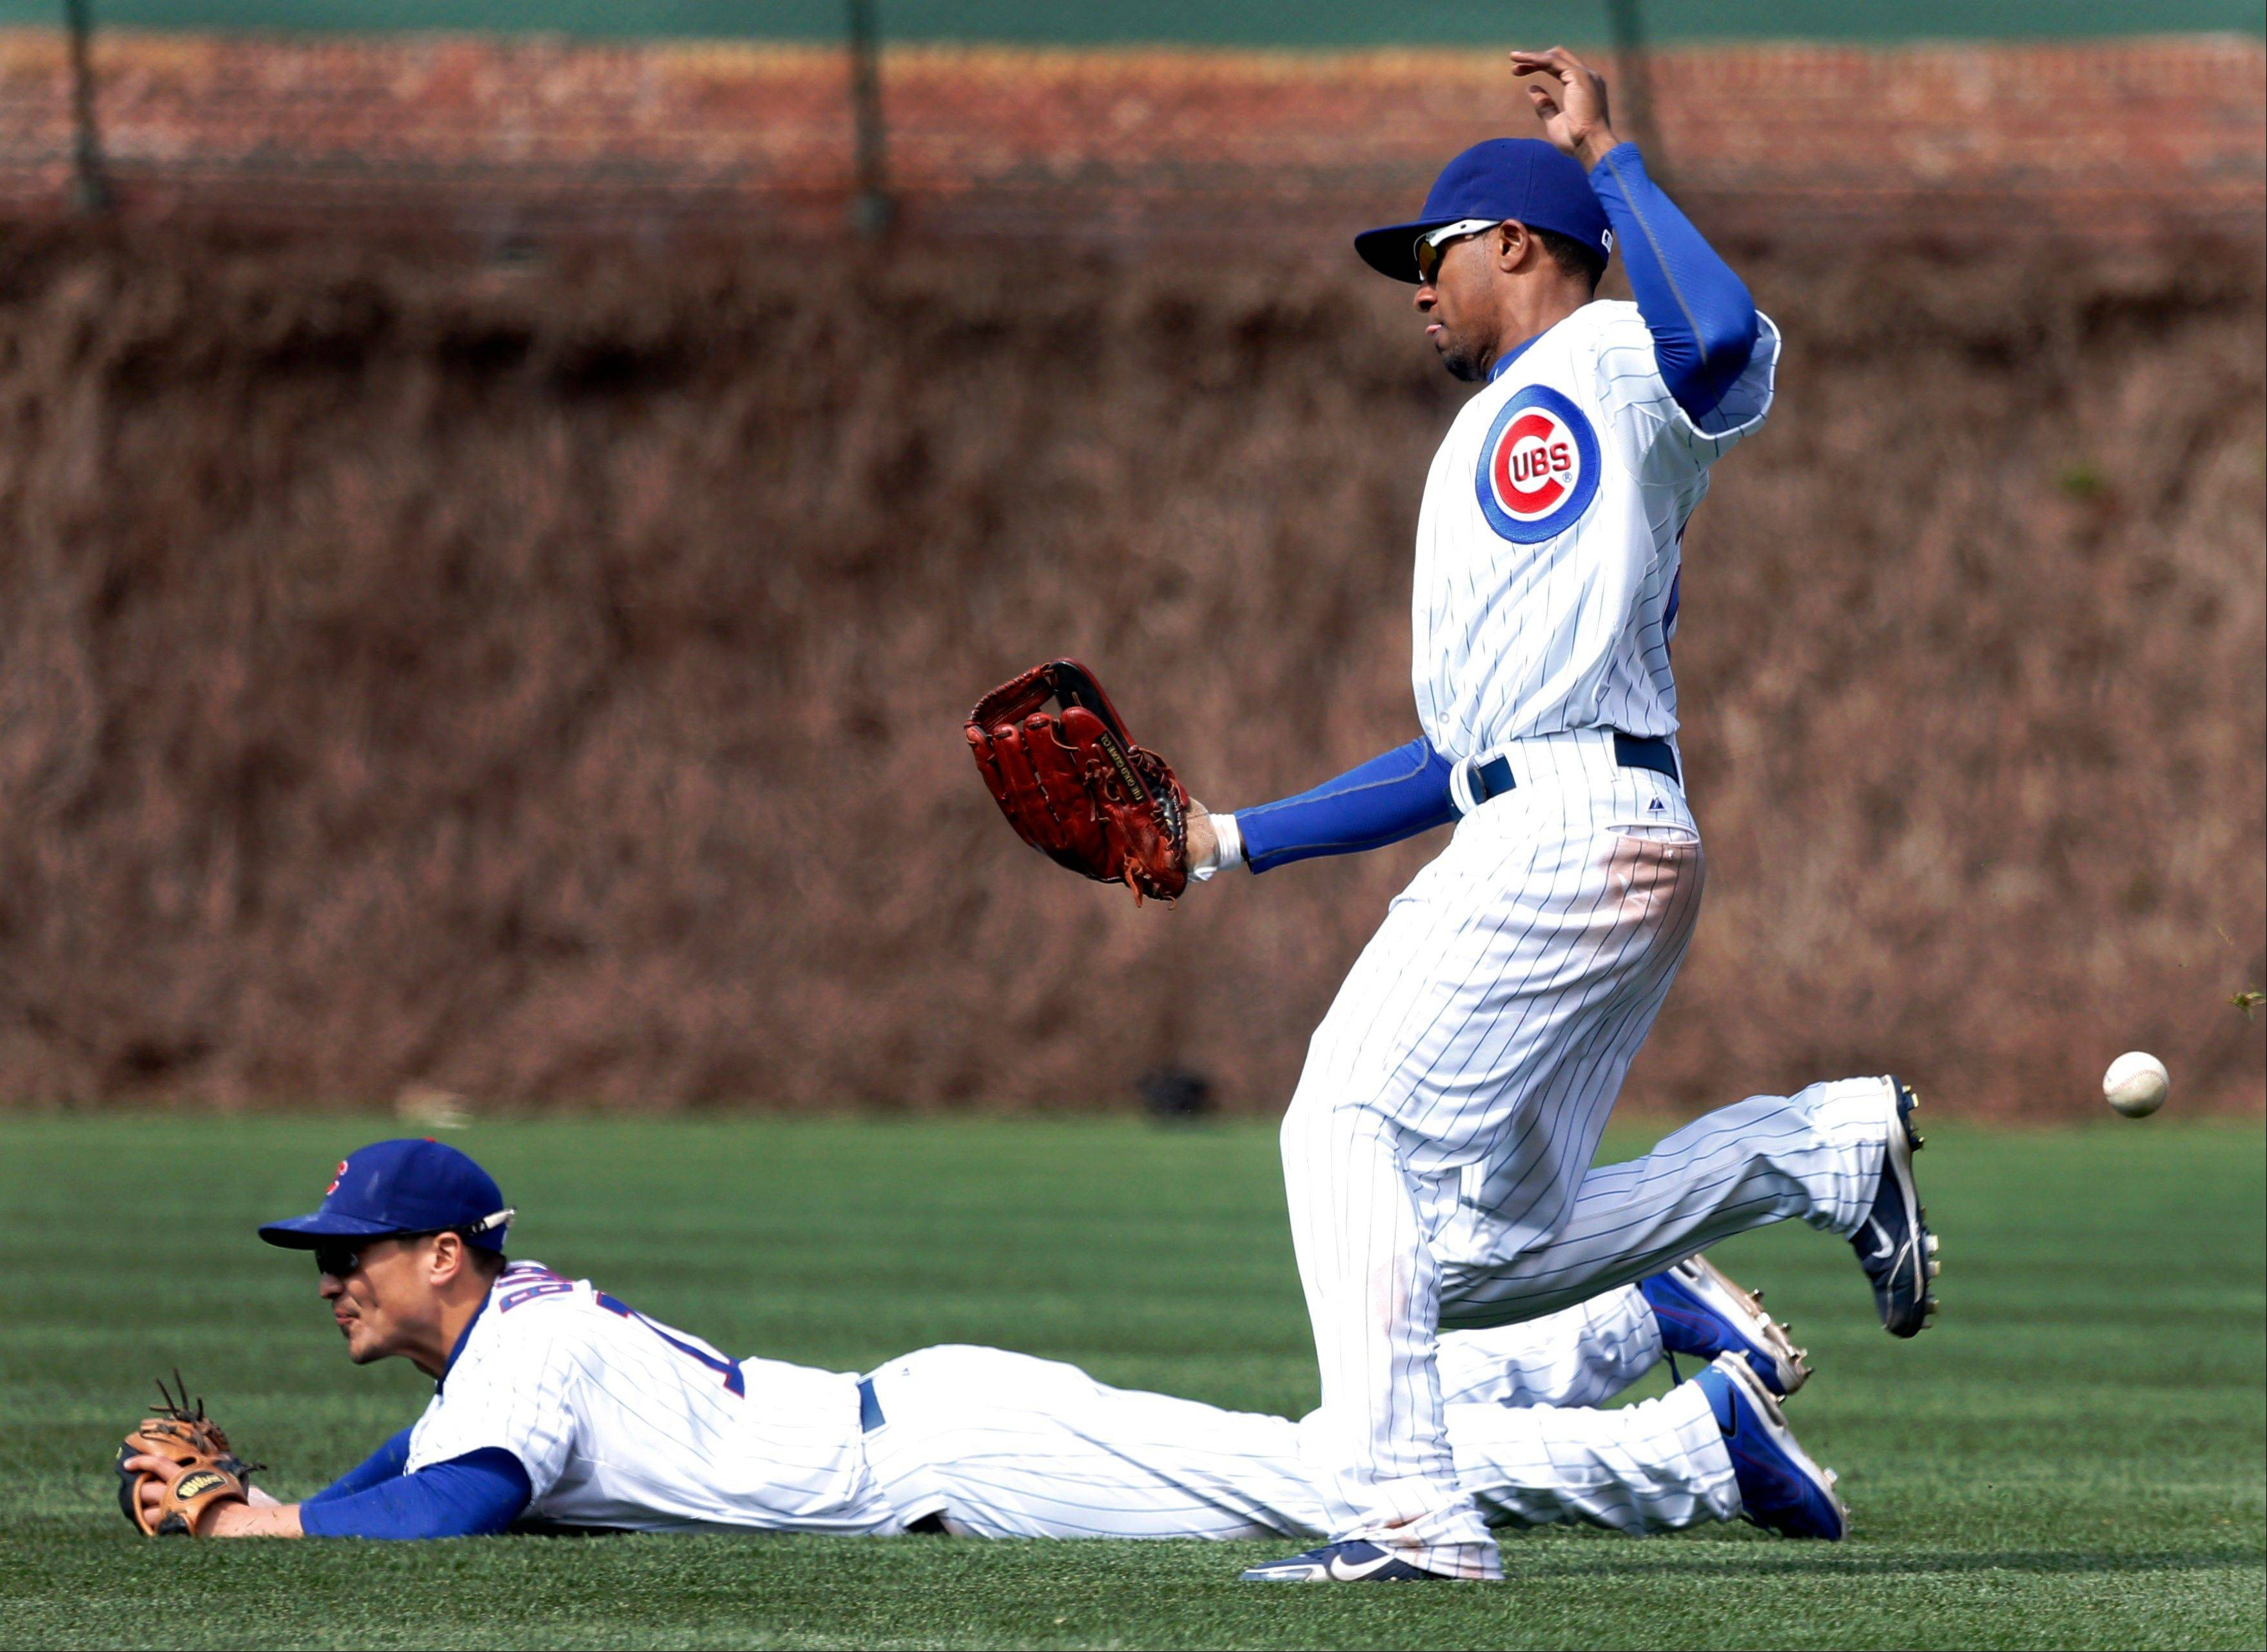 Chicago Cubs right fielder Julio Borbon, right, is unable to catch a shallow pop fly off the bat of San Diego Padres' Yonder Alonso, scoring Jesus Guzman, as second baseman Darwin Barney falls to the turf during the eighth inning of a baseball game Thursday, May 2, 2013, in Chicago.